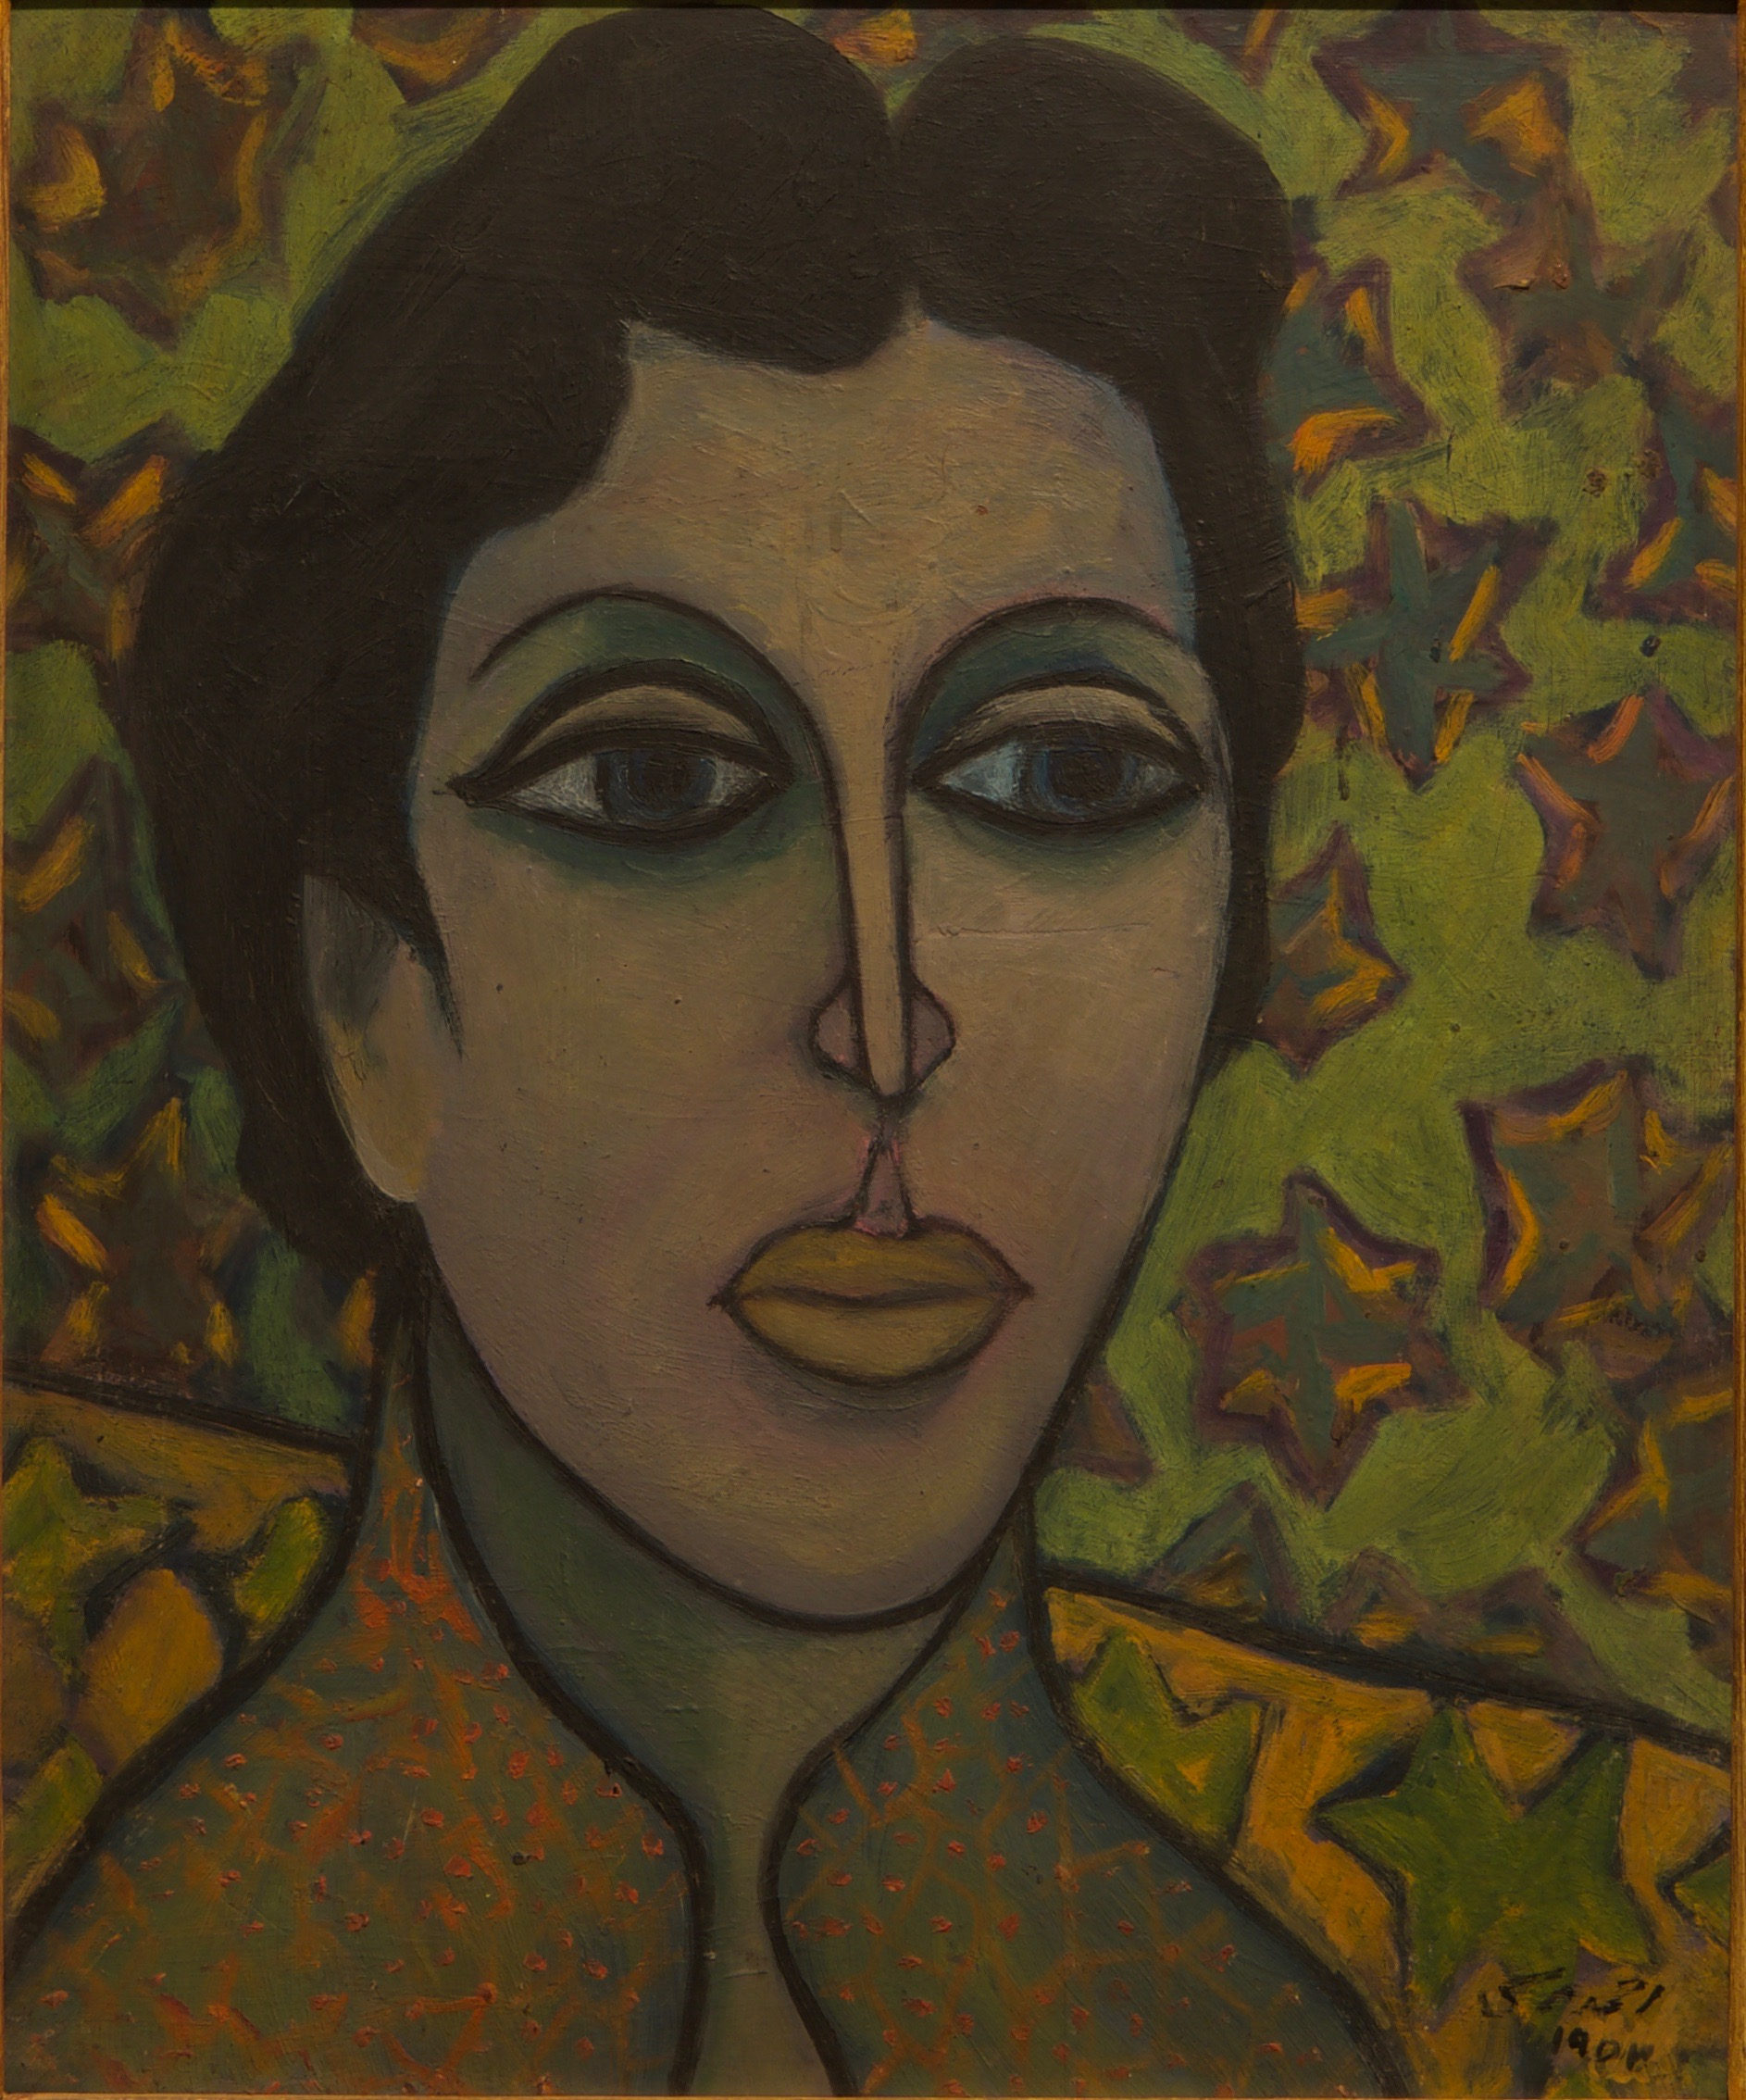 Ahmed-Morsi-Untitled-(Portrait-of-Madam-Traboulsi-I)-1953.jpg